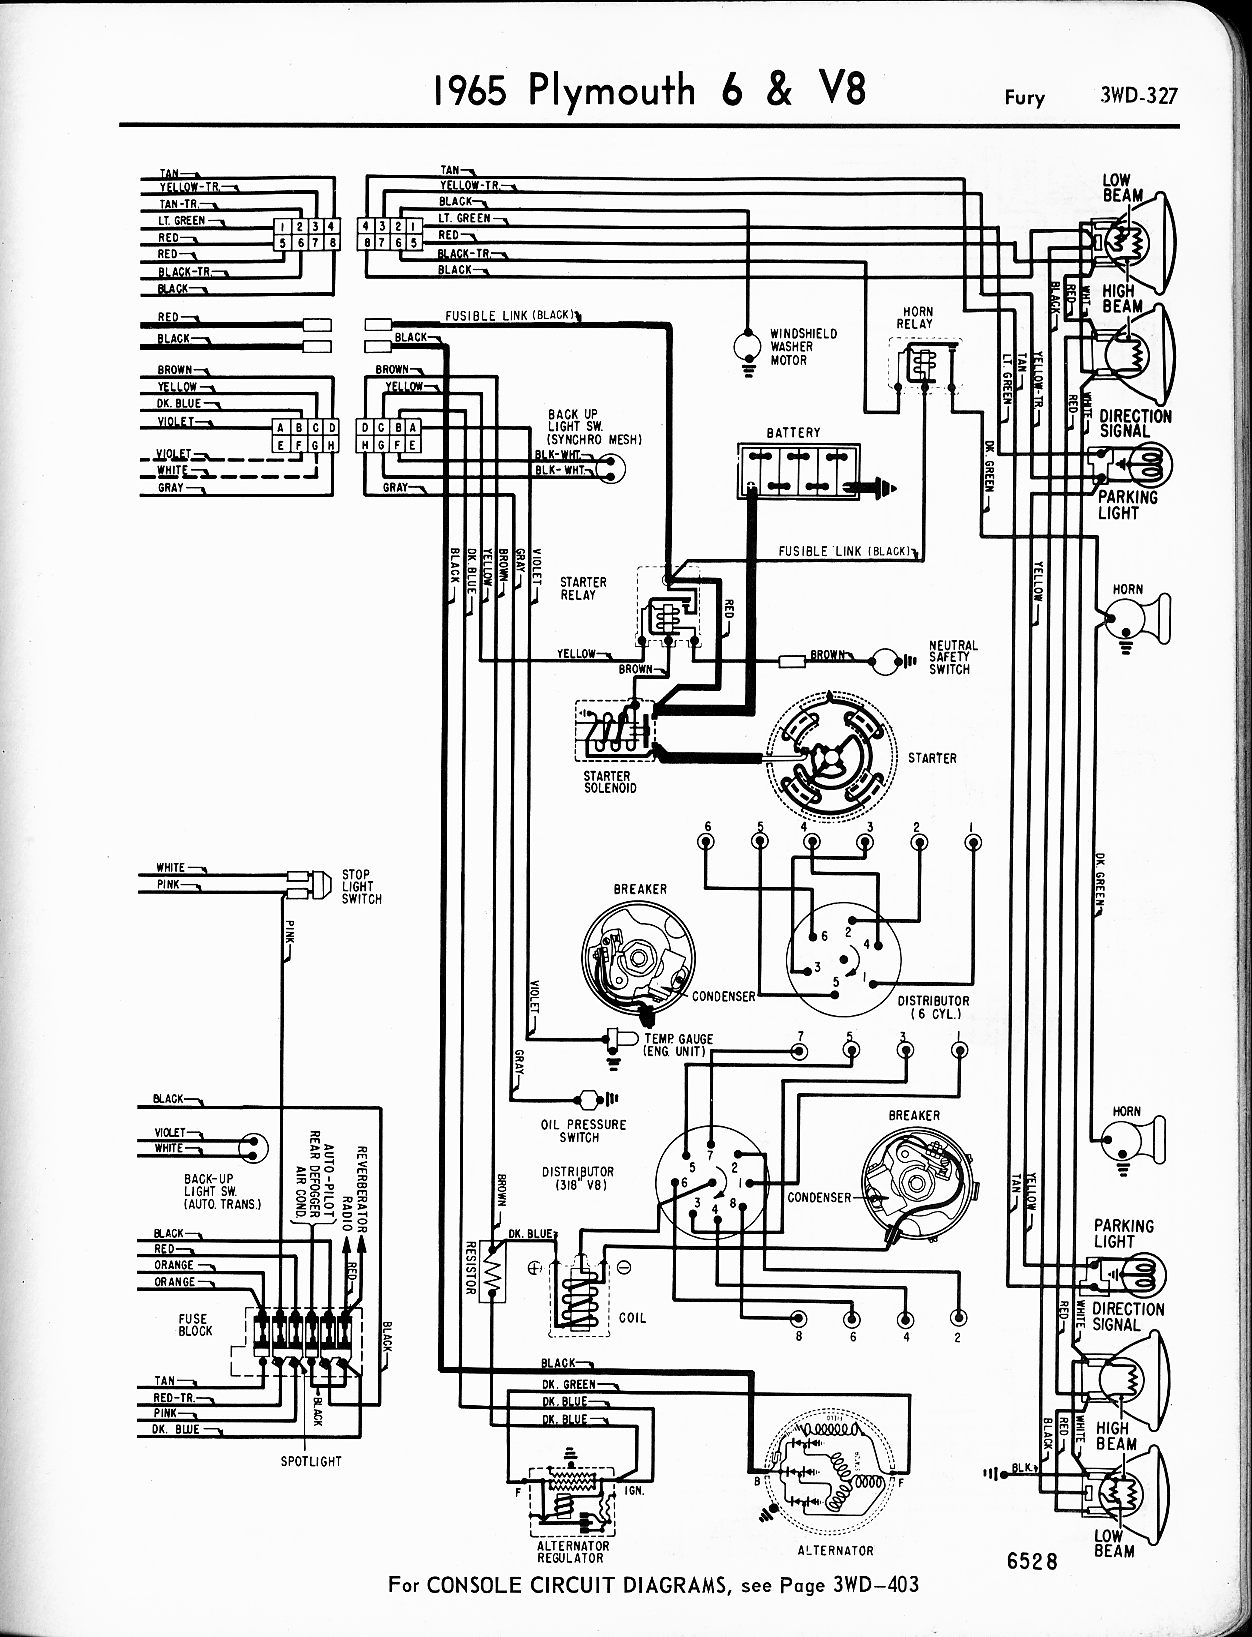 1950 chrysler imperial wiring schematics wiring diagrams 1952 plymouth wiring harness wiring diagrams 1953 plymouth wiring diagram plete car engine